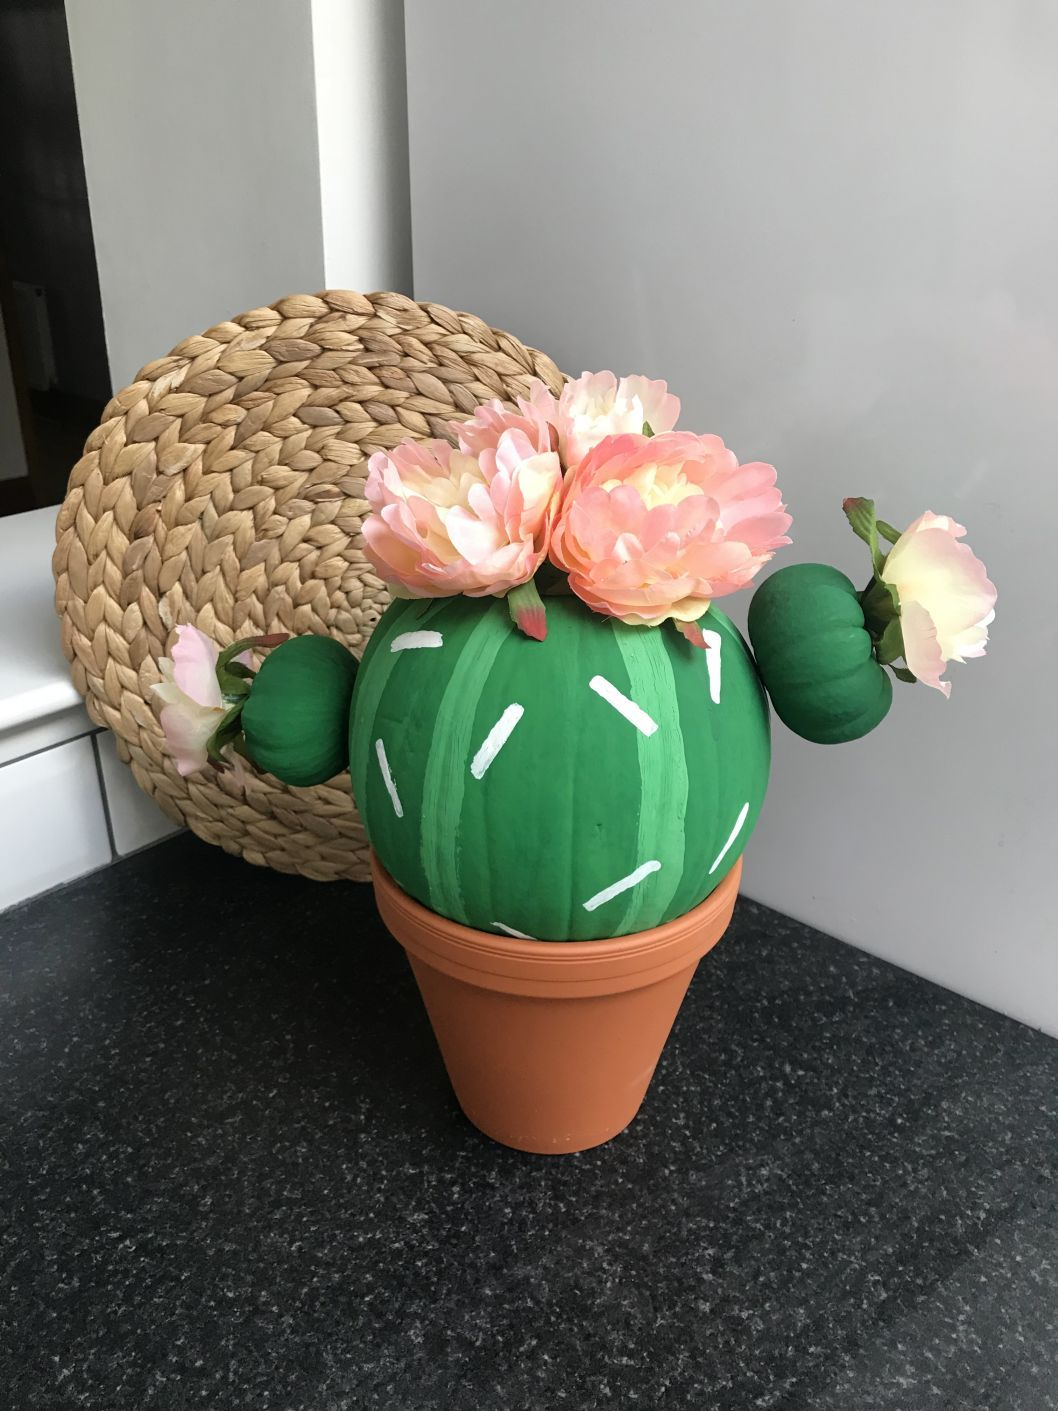 How to make a cactus pumpkin DIY painted pumpkin - flowering cactus #paintedpumpkinideas